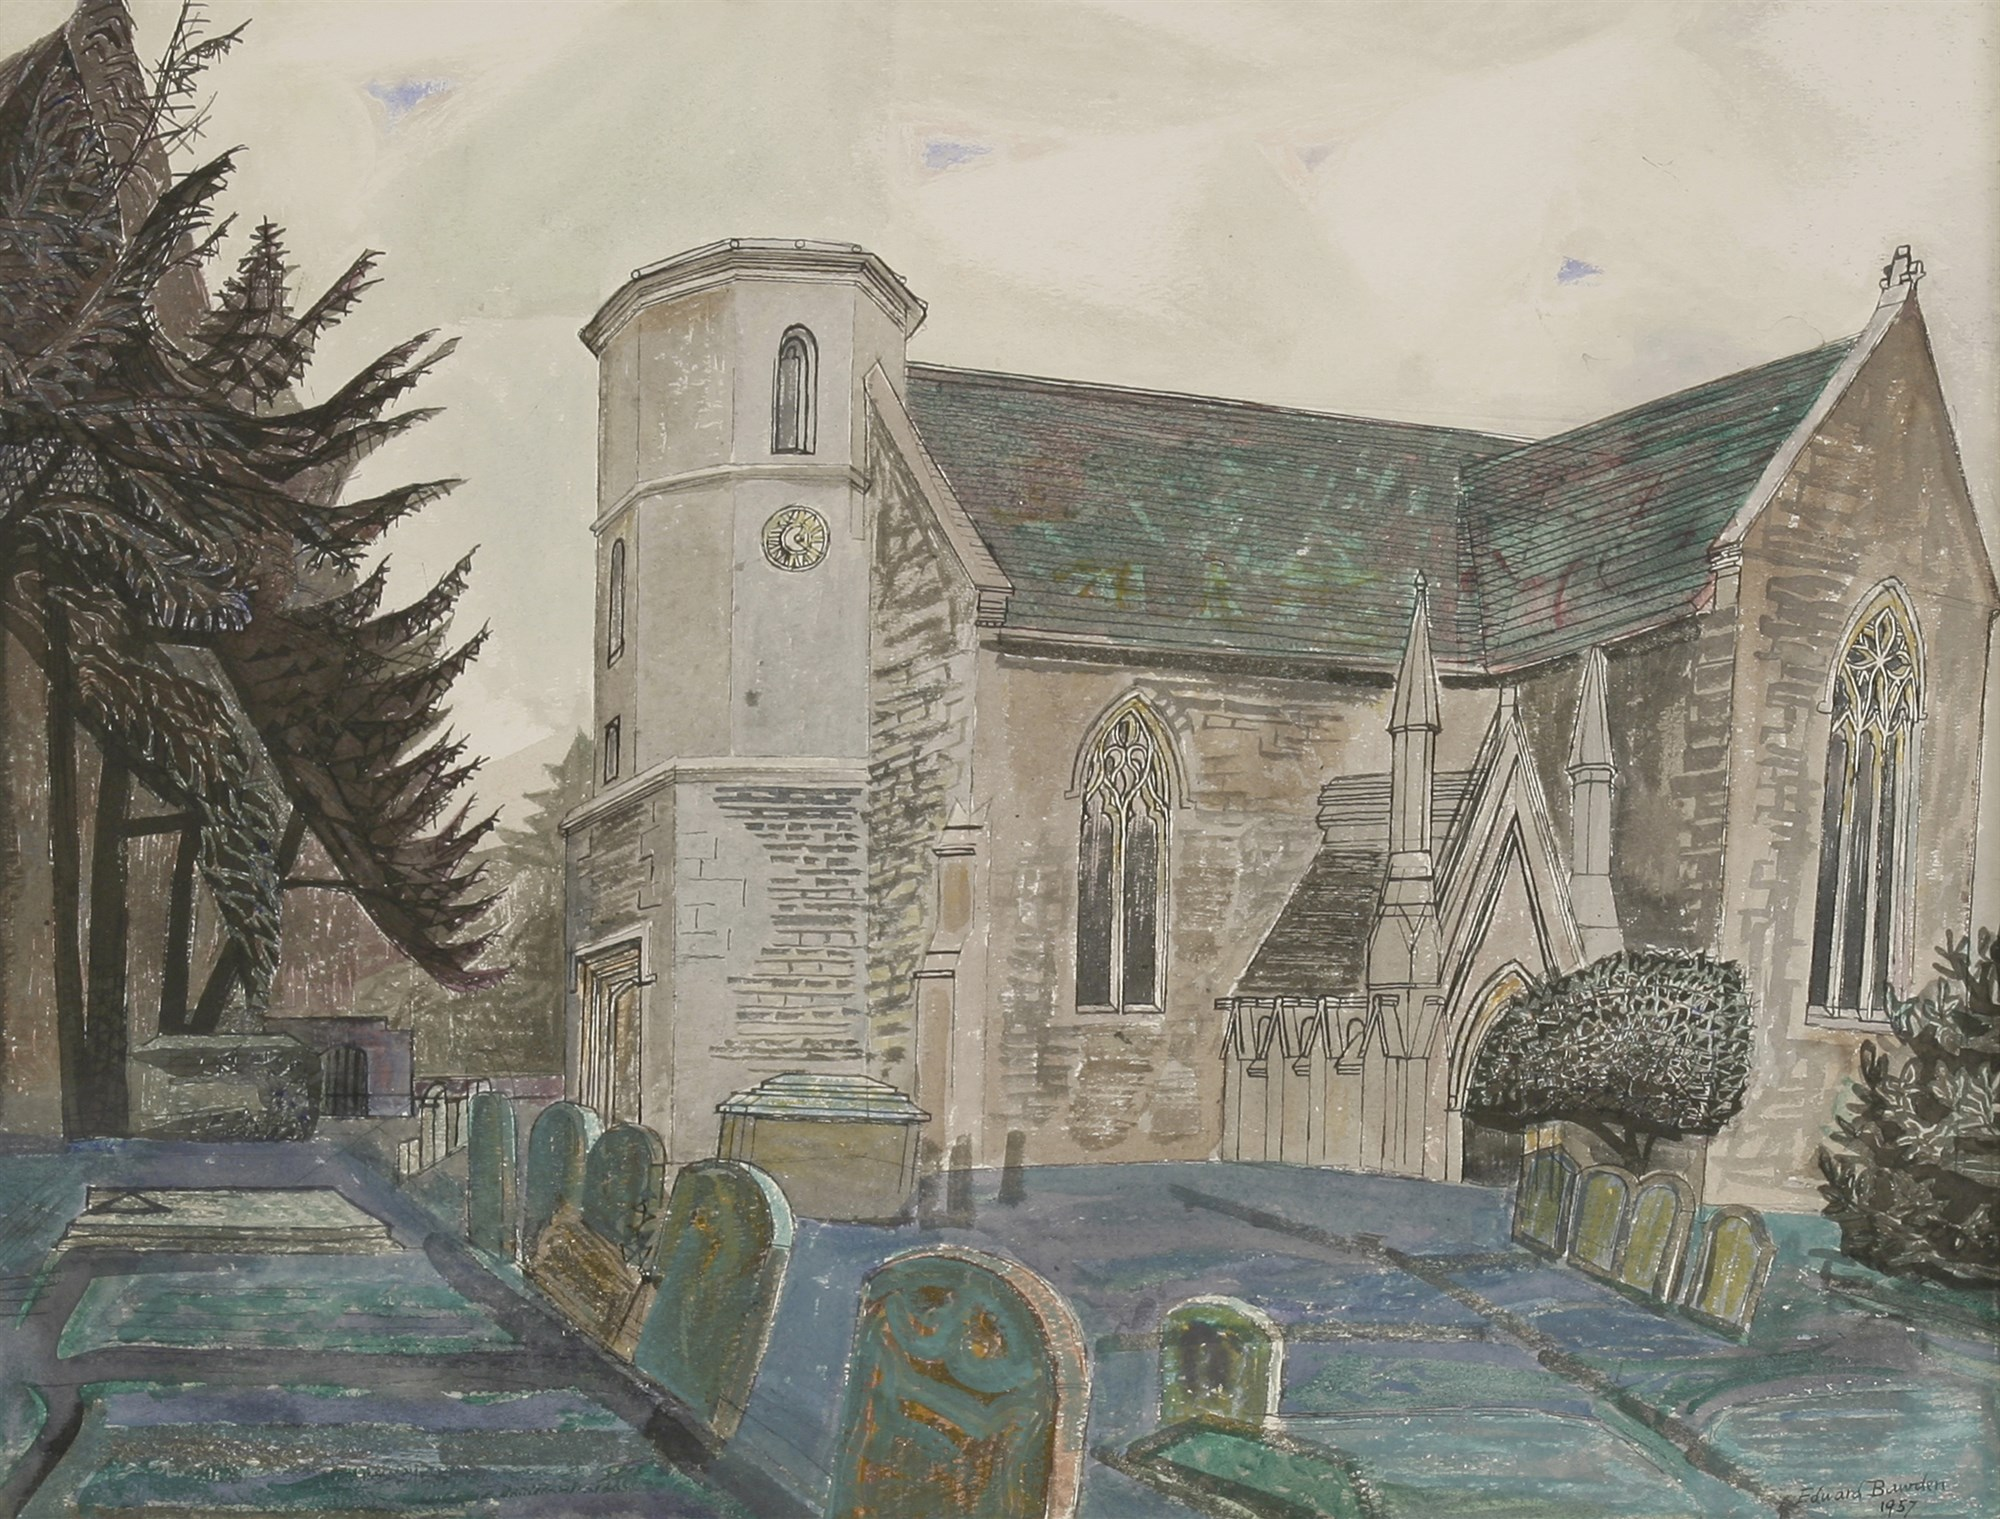 Edward Bawden RA (1903-1989) ST NICHOLAS'S CHURCH, FYFIELD. Sold for £11,956 including premium at Sworders in November 2017